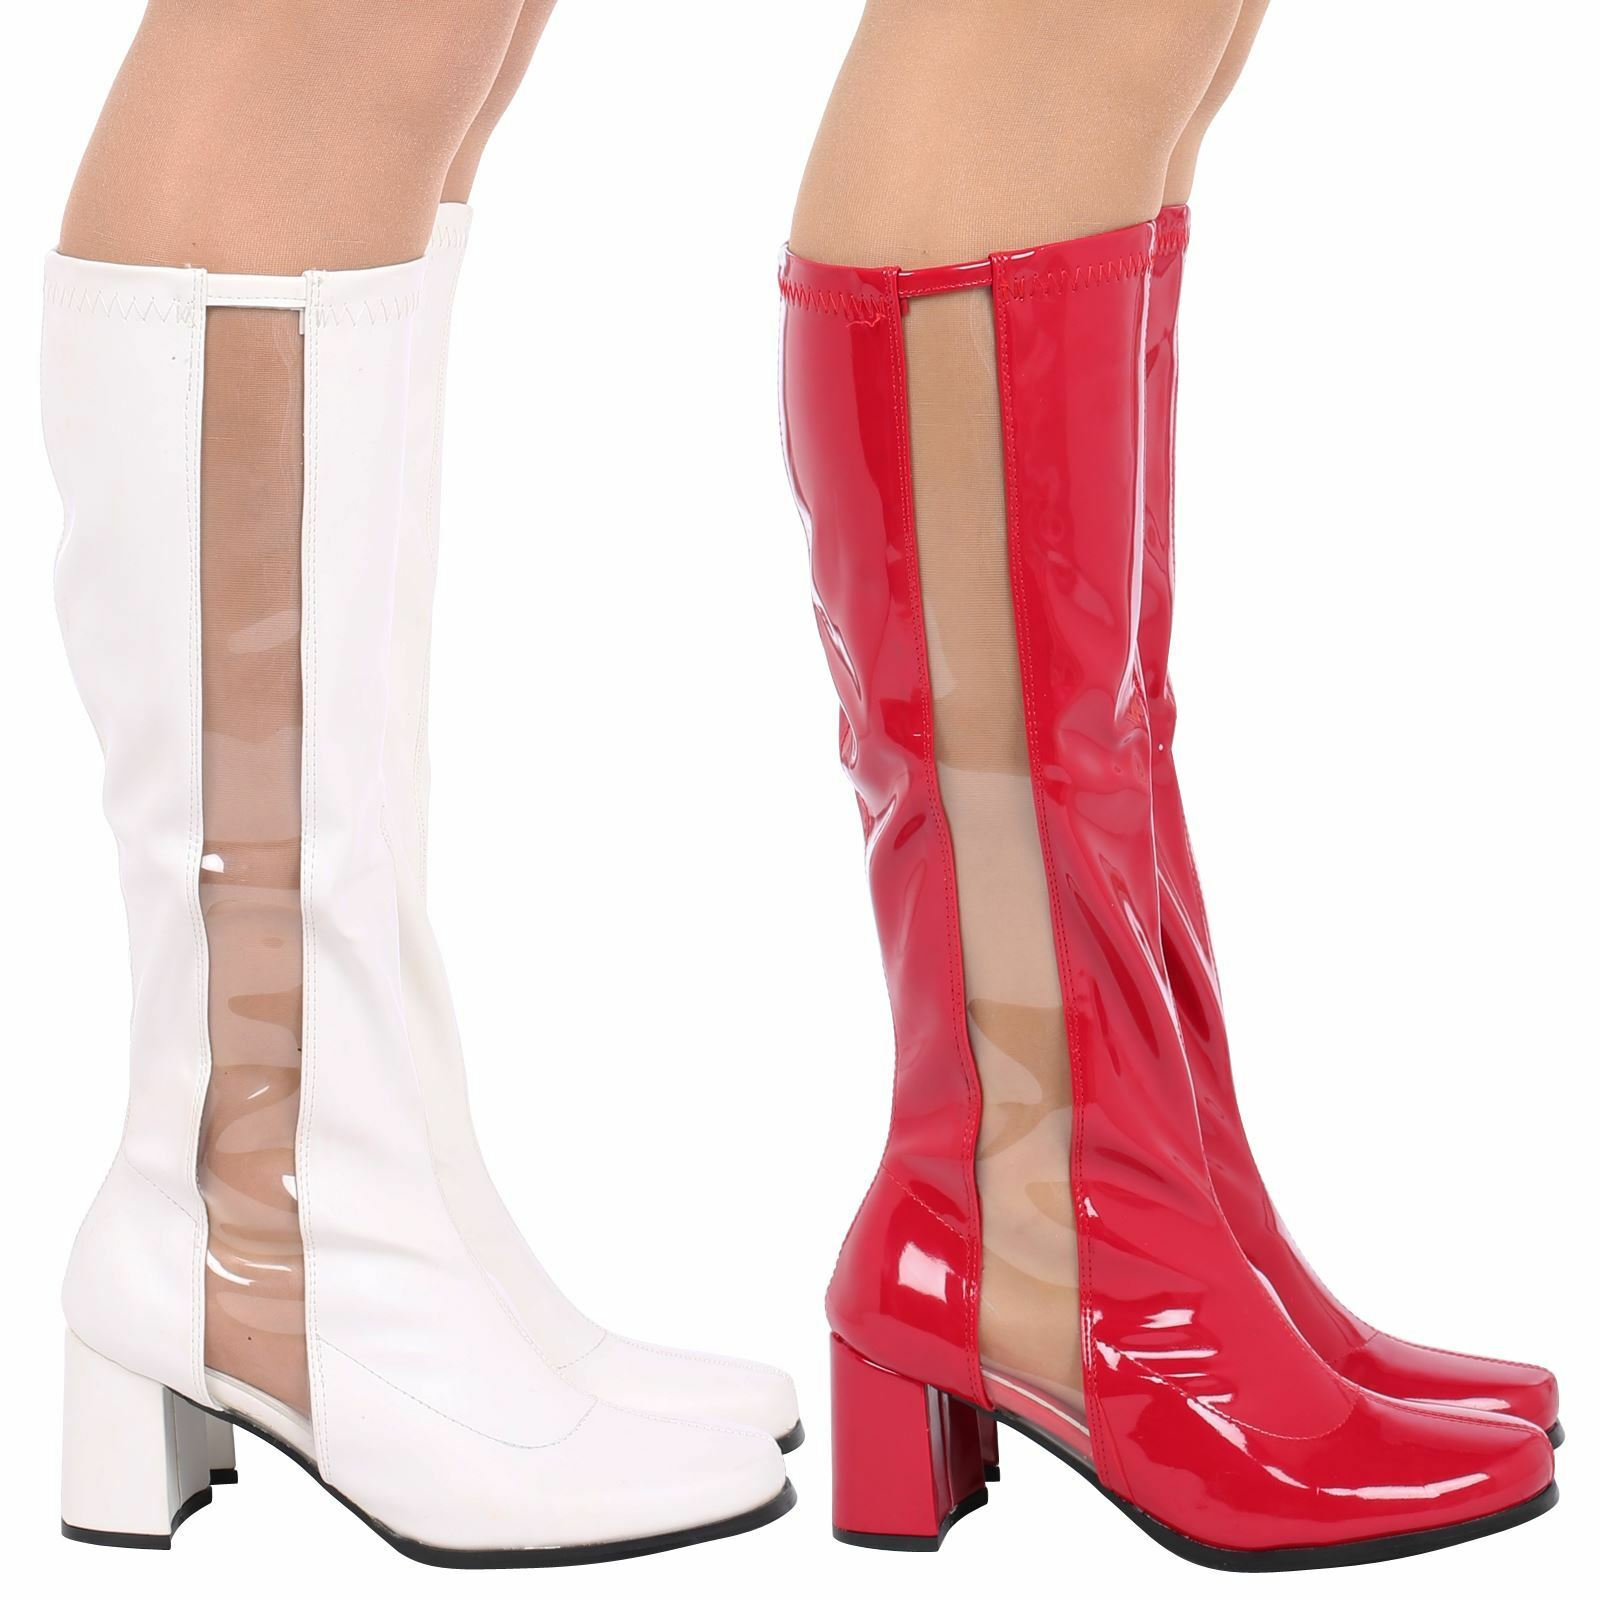 Ginger Womens Mid Block Heels Clear Side Panel Mid Calf Boots Ladies Shoes Size